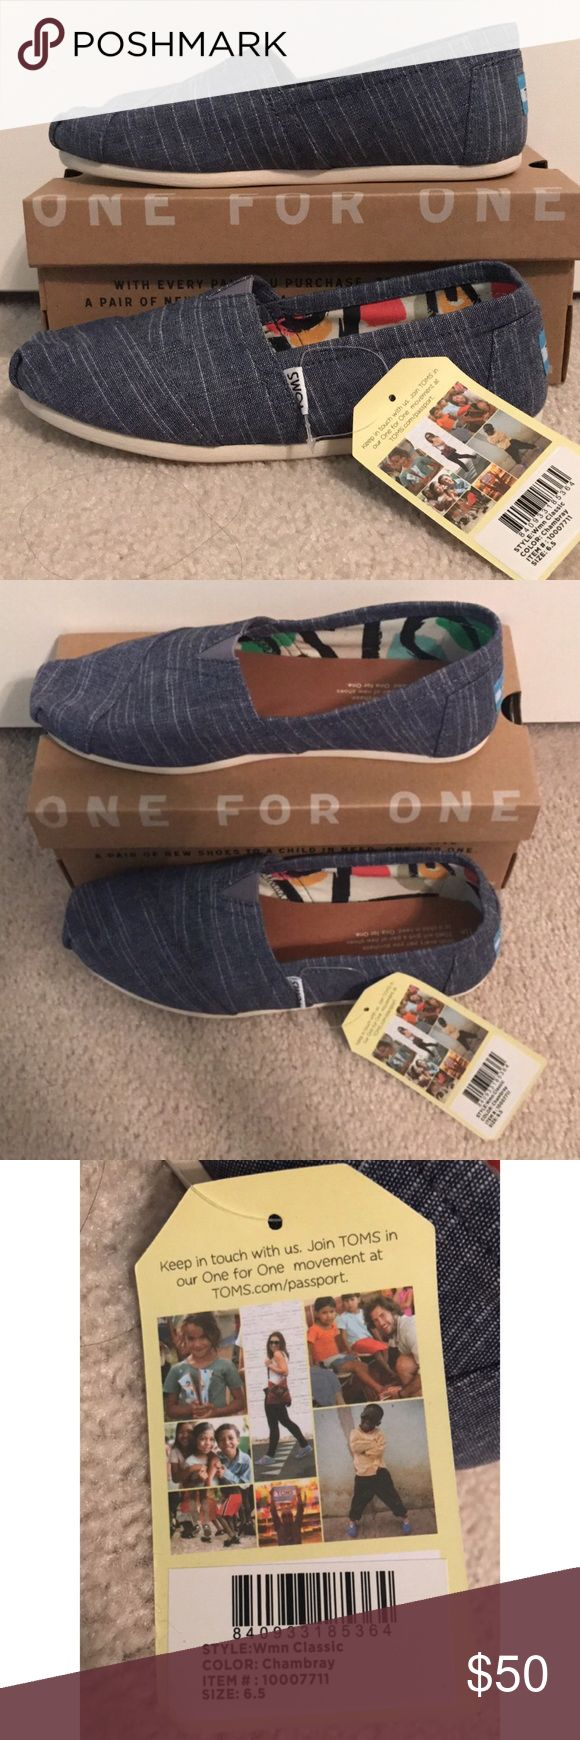 BNIB Toms Chambray Classics 🚨🚨🚨NO TRADES, NO OFFERS - FIRM PRICE. OFFERS DECLINED🚨🚨🚨 🌹brand new, never worn! Super clean.  🌹chambray/denim style, have not and will not model these for the sake of keeping them as clean and fresh as possible. TOMS Shoes Sneakers